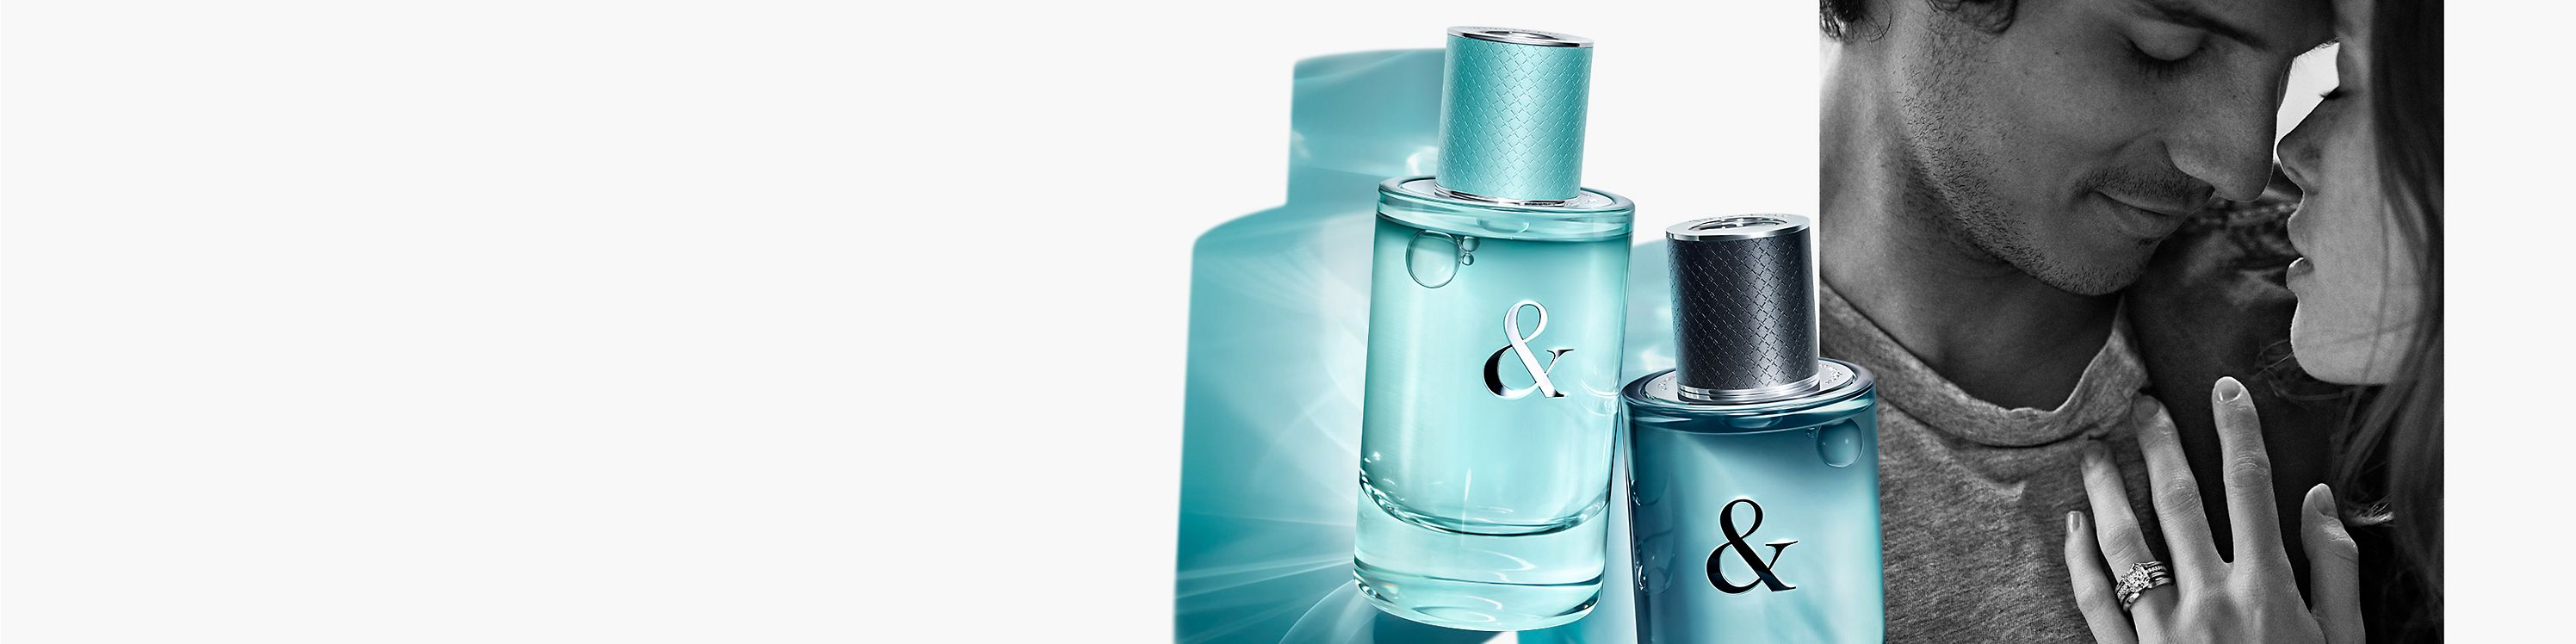 Scopri e acquista i profumi Tiffany & Co.